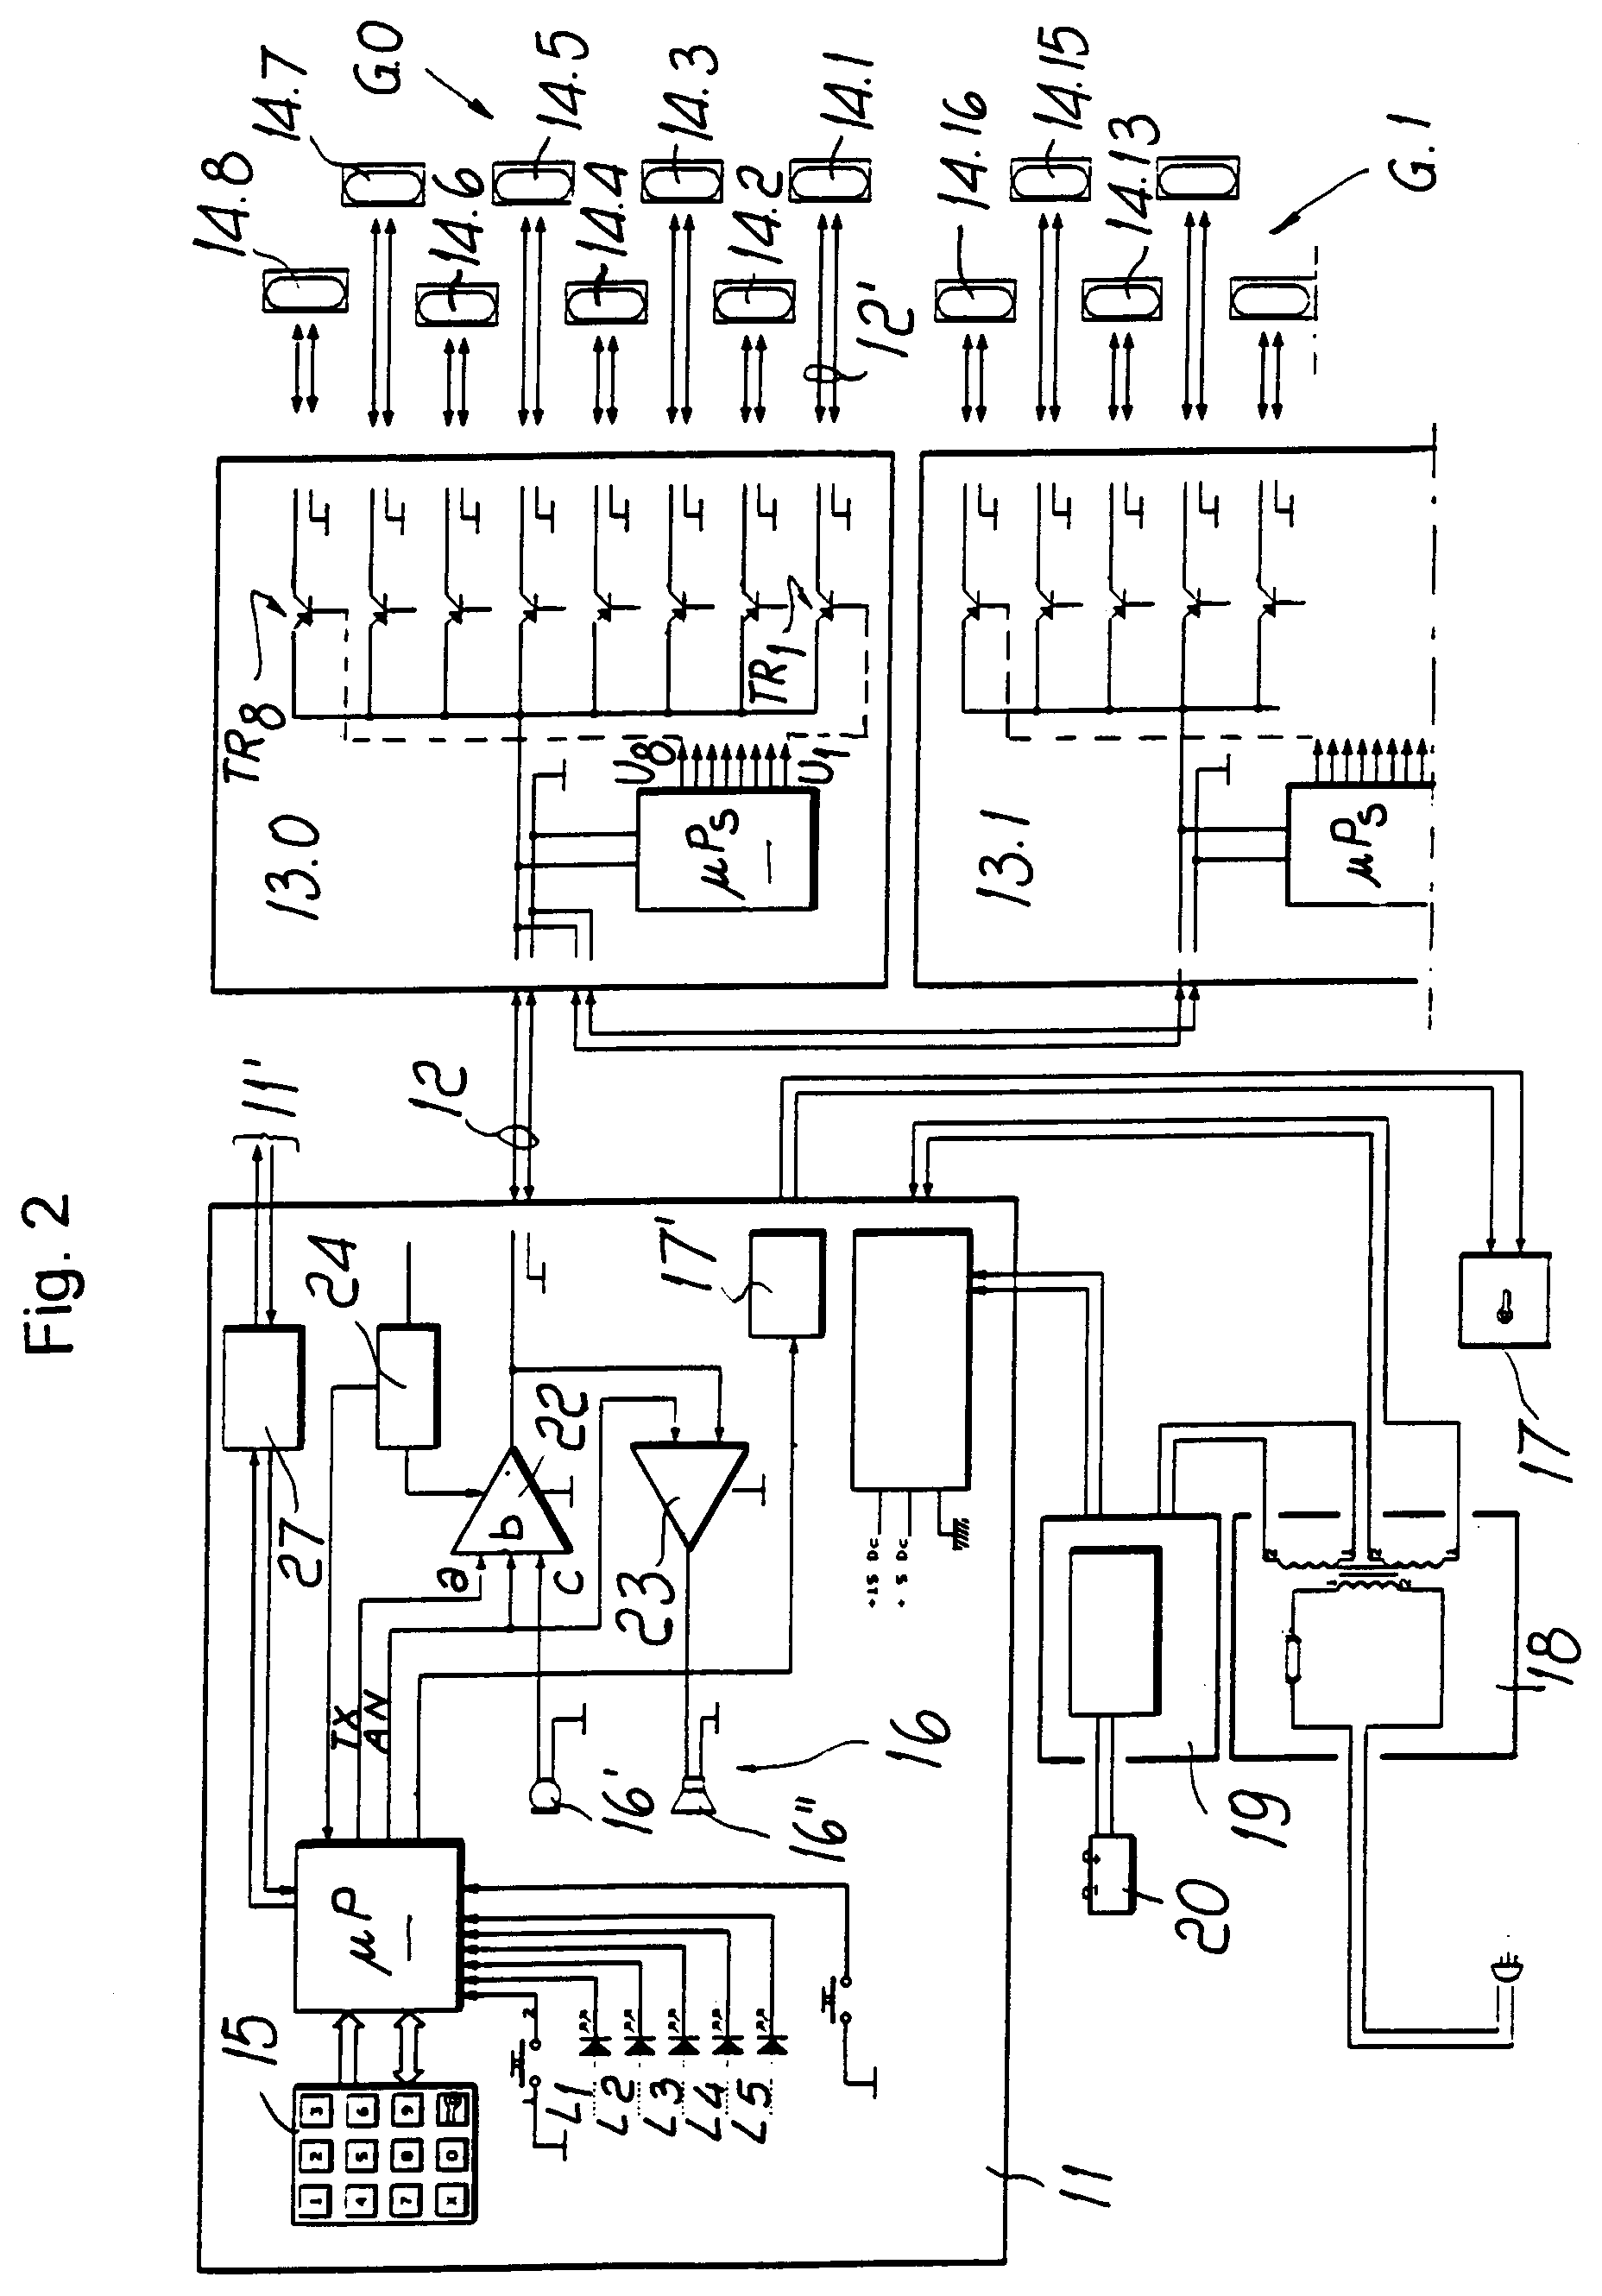 00160001 urmet wiring diagram urmet entry phone wiring diagram \u2022 wiring tomar scorpion wiring diagram at gsmportal.co